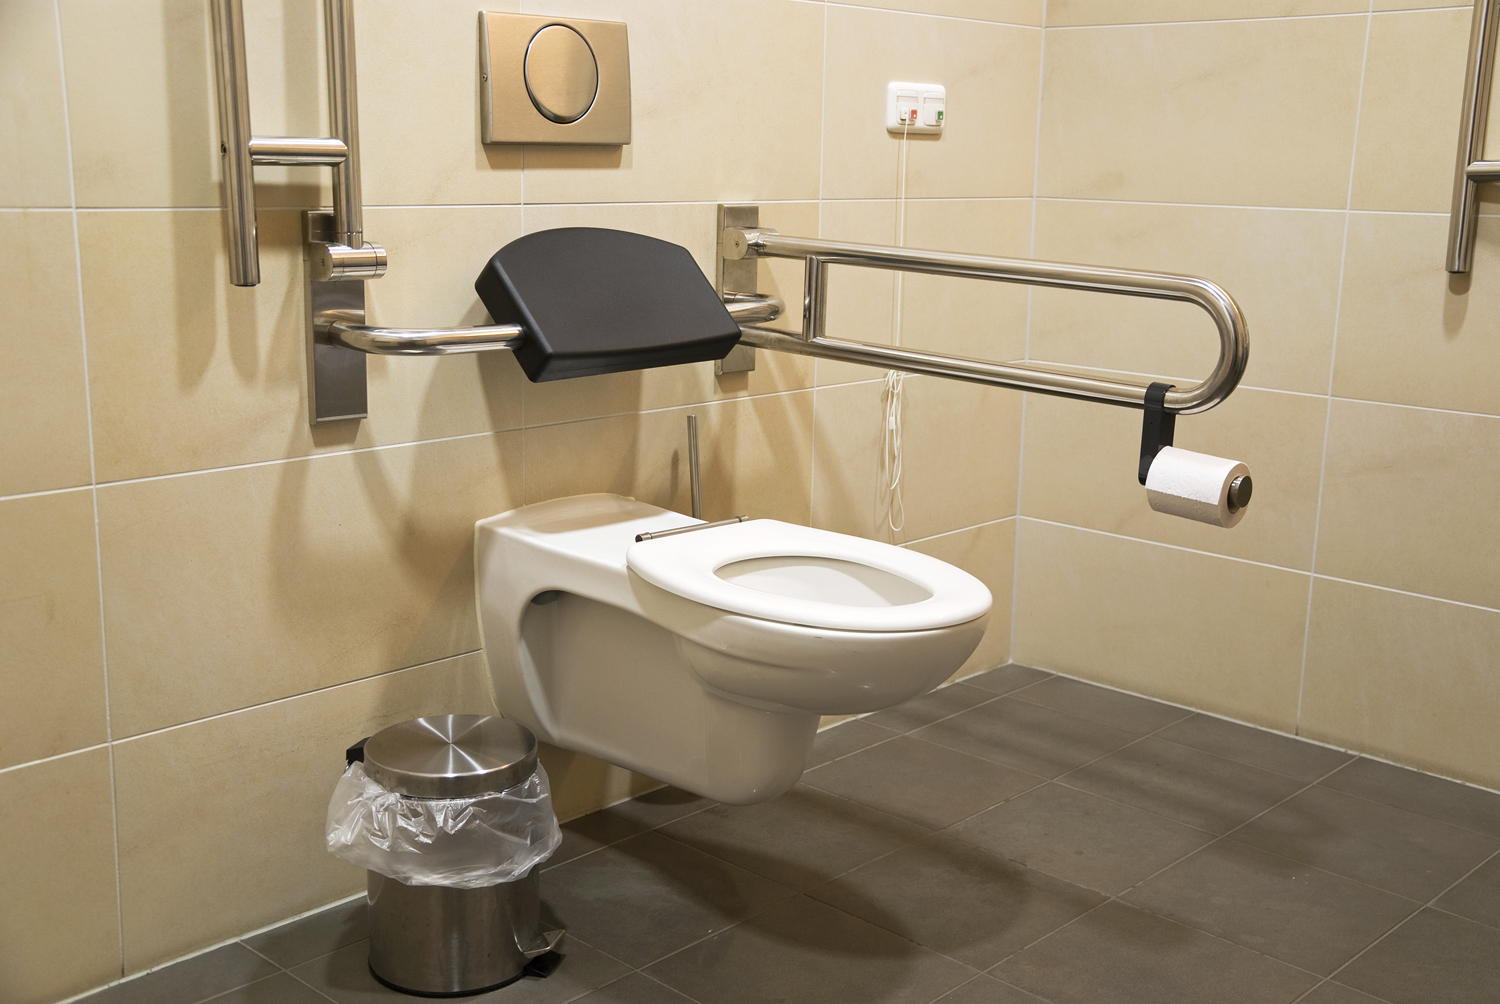 Bathroom And Toilet For Disabled People